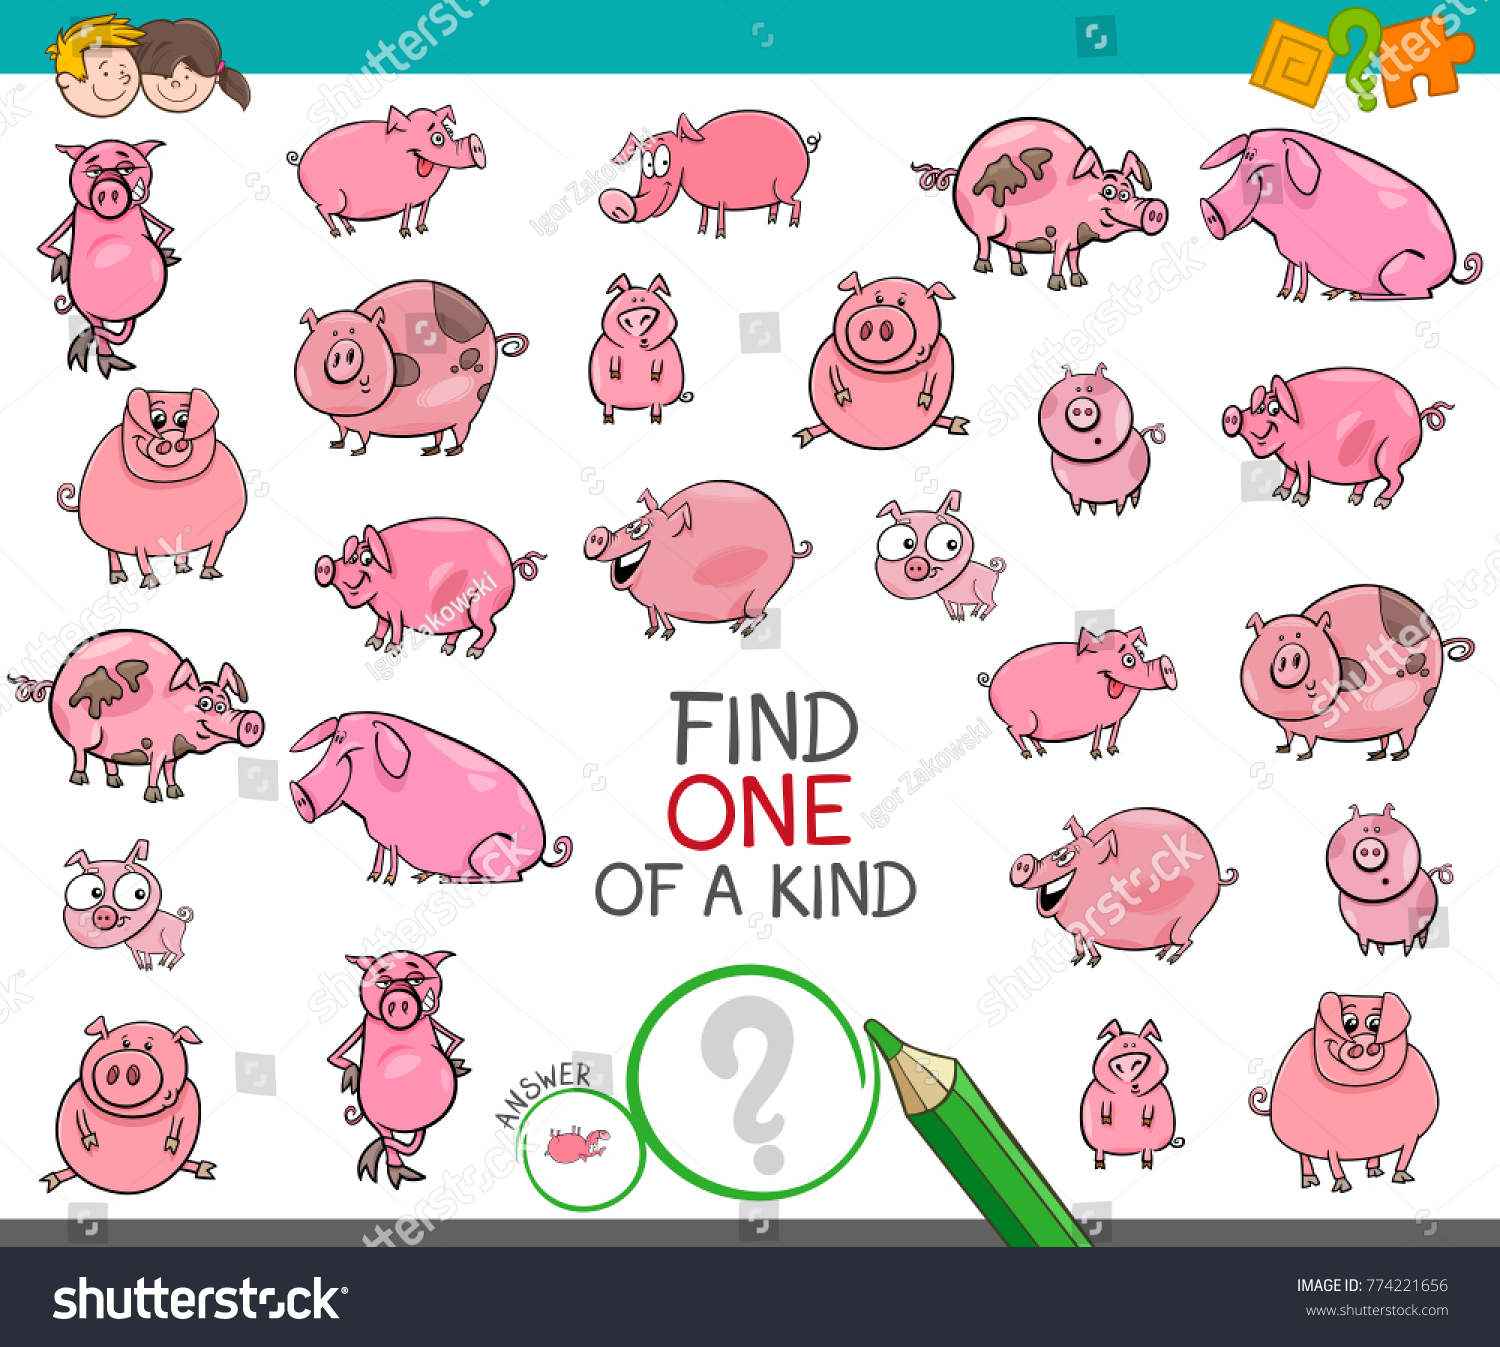 Cartoon Illustration Find One Kind Picture Stock Vector Royalty